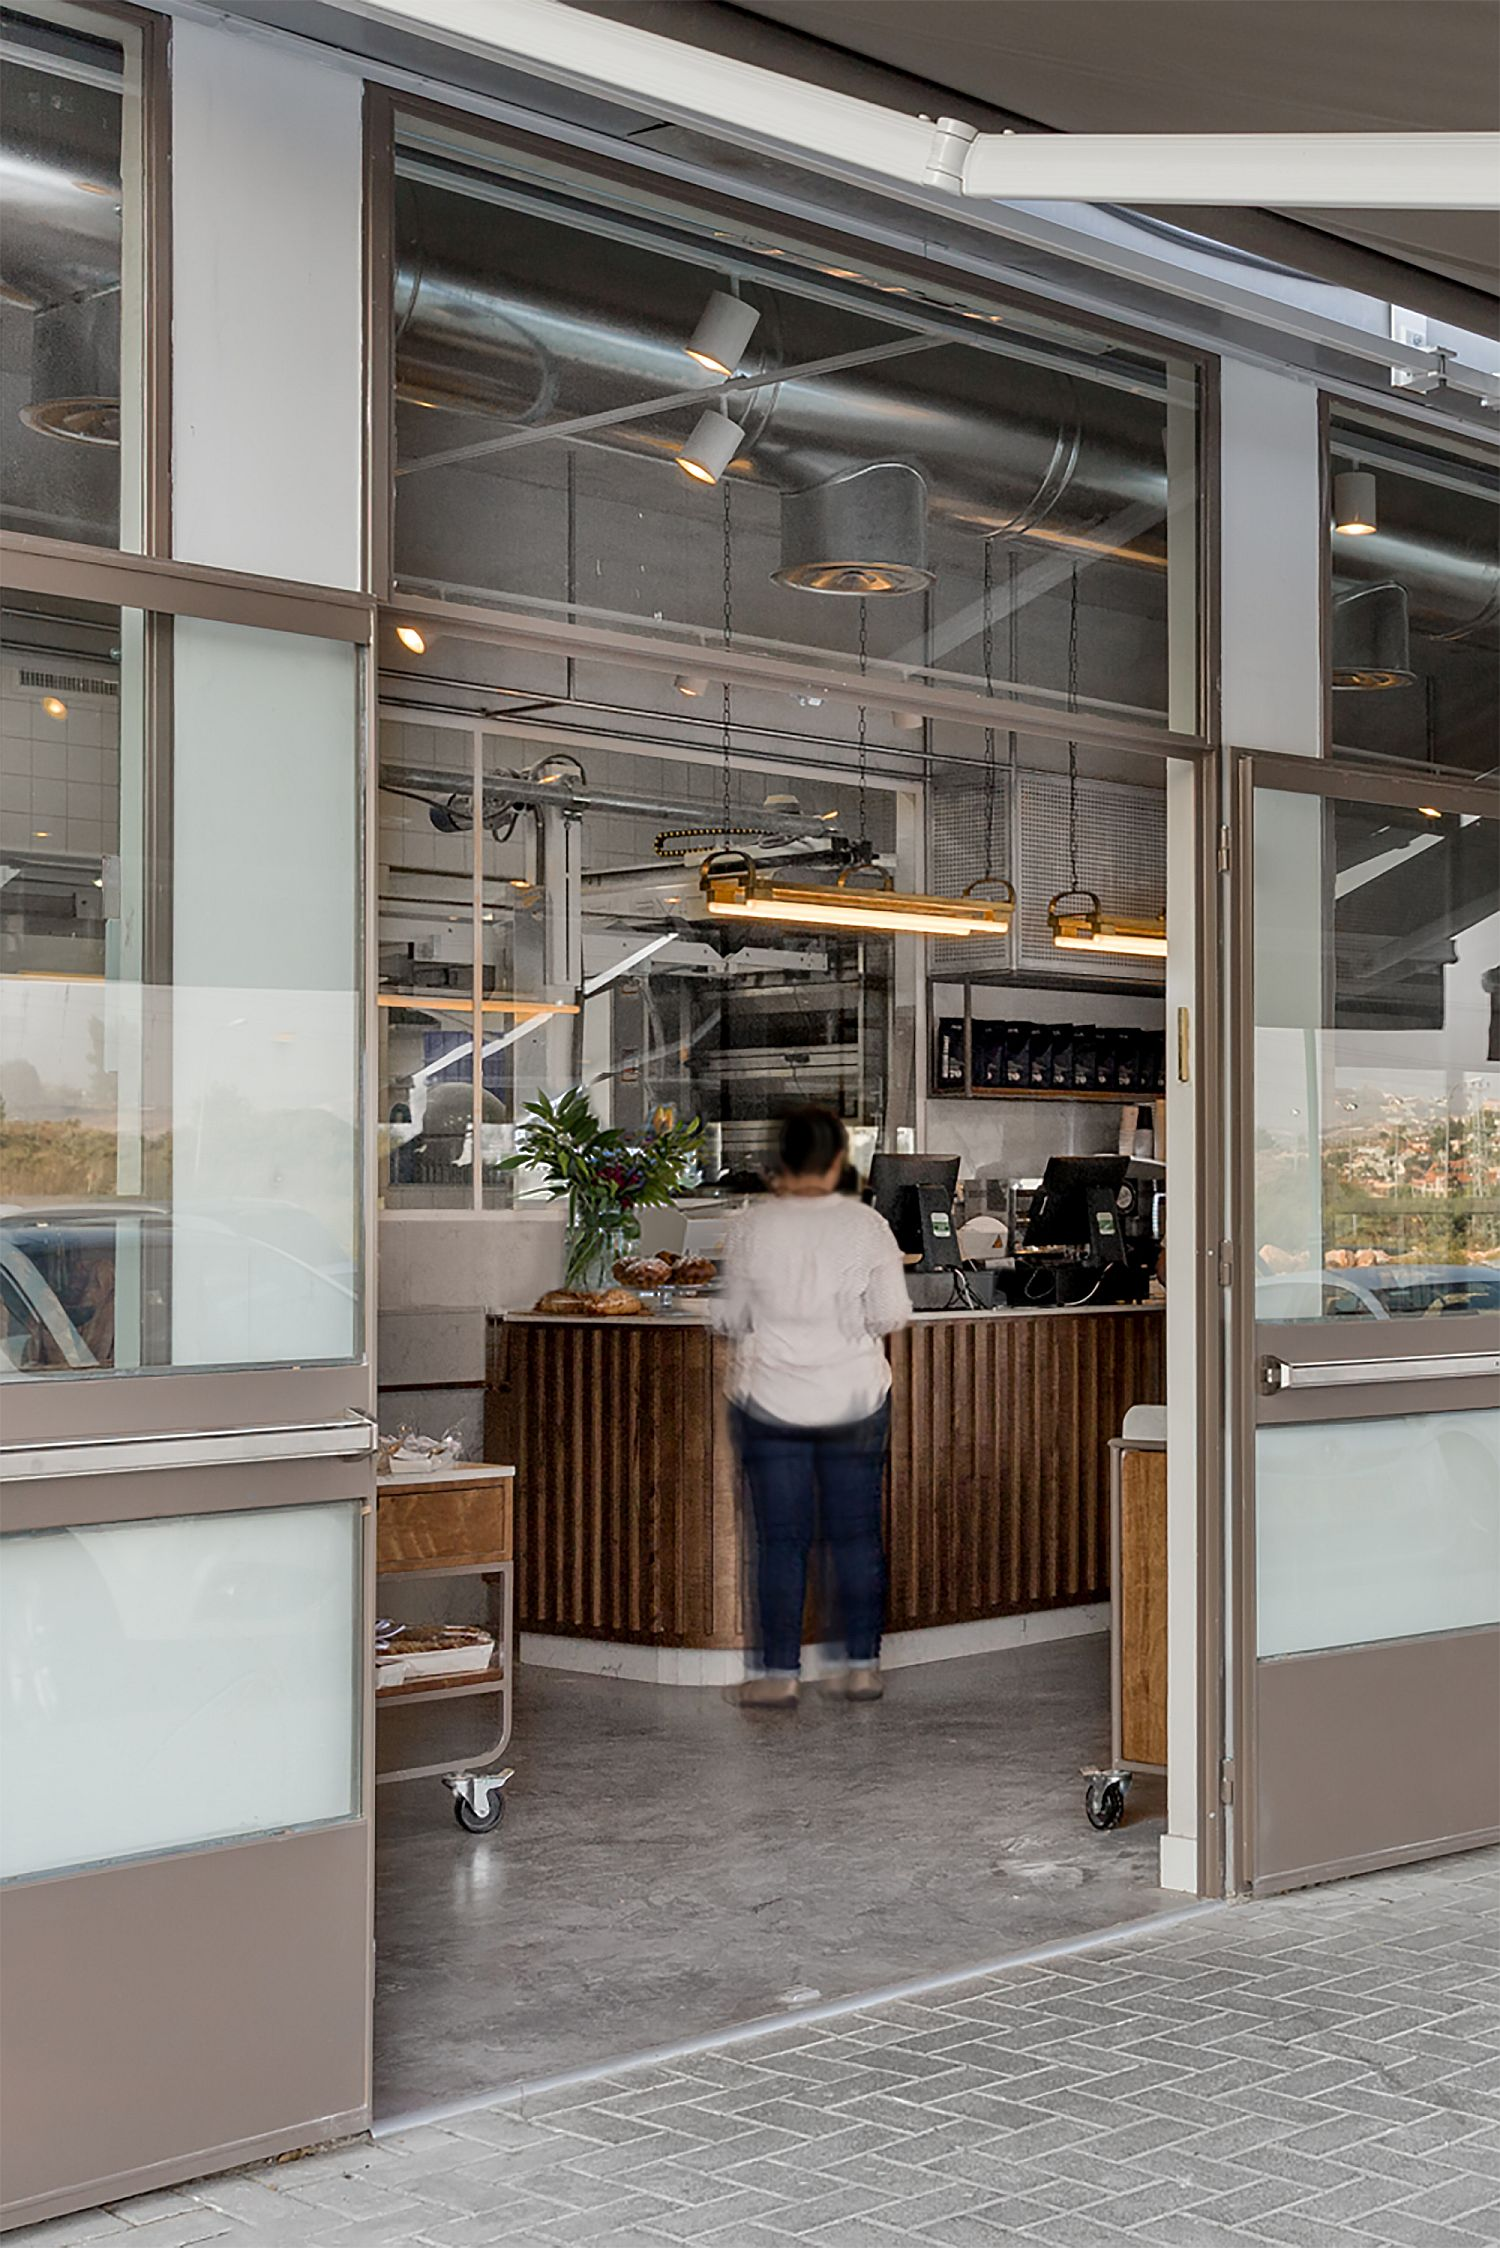 Concrete-metal-and-polished-finsihes-find-space-next-to-one-another-inside-the-bakery